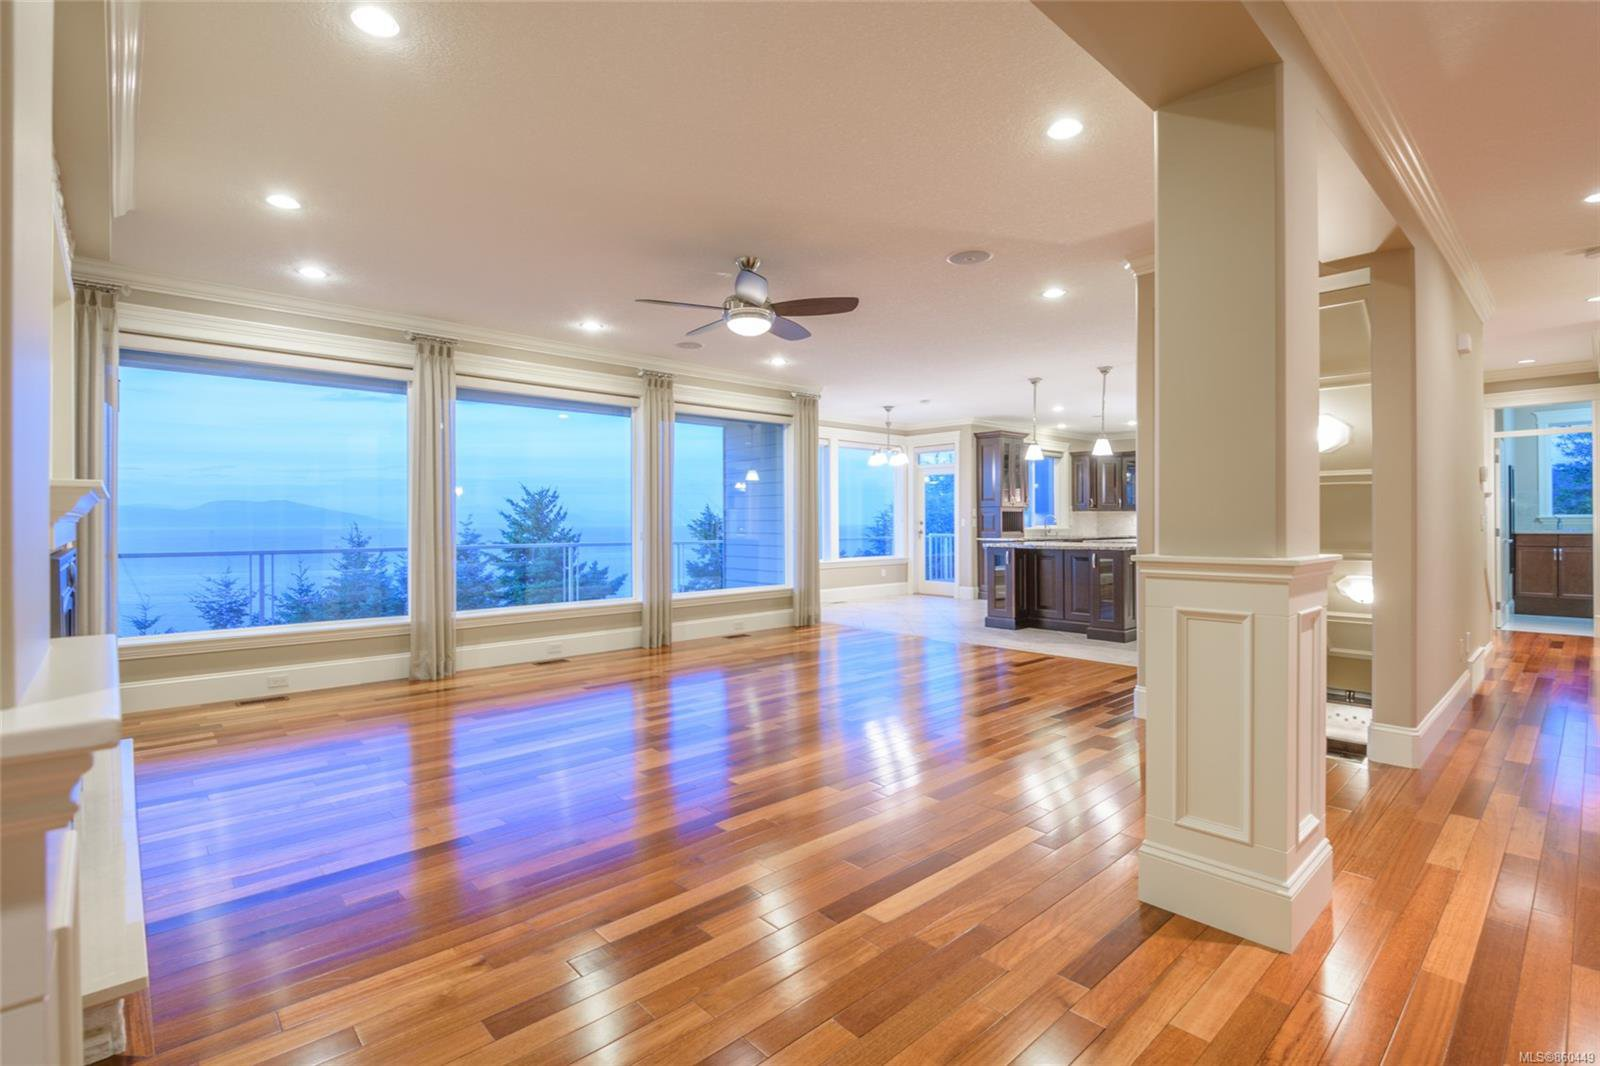 Photo 7: Photos: 5019 Hinrich View in : Na North Nanaimo House for sale (Nanaimo)  : MLS®# 860449